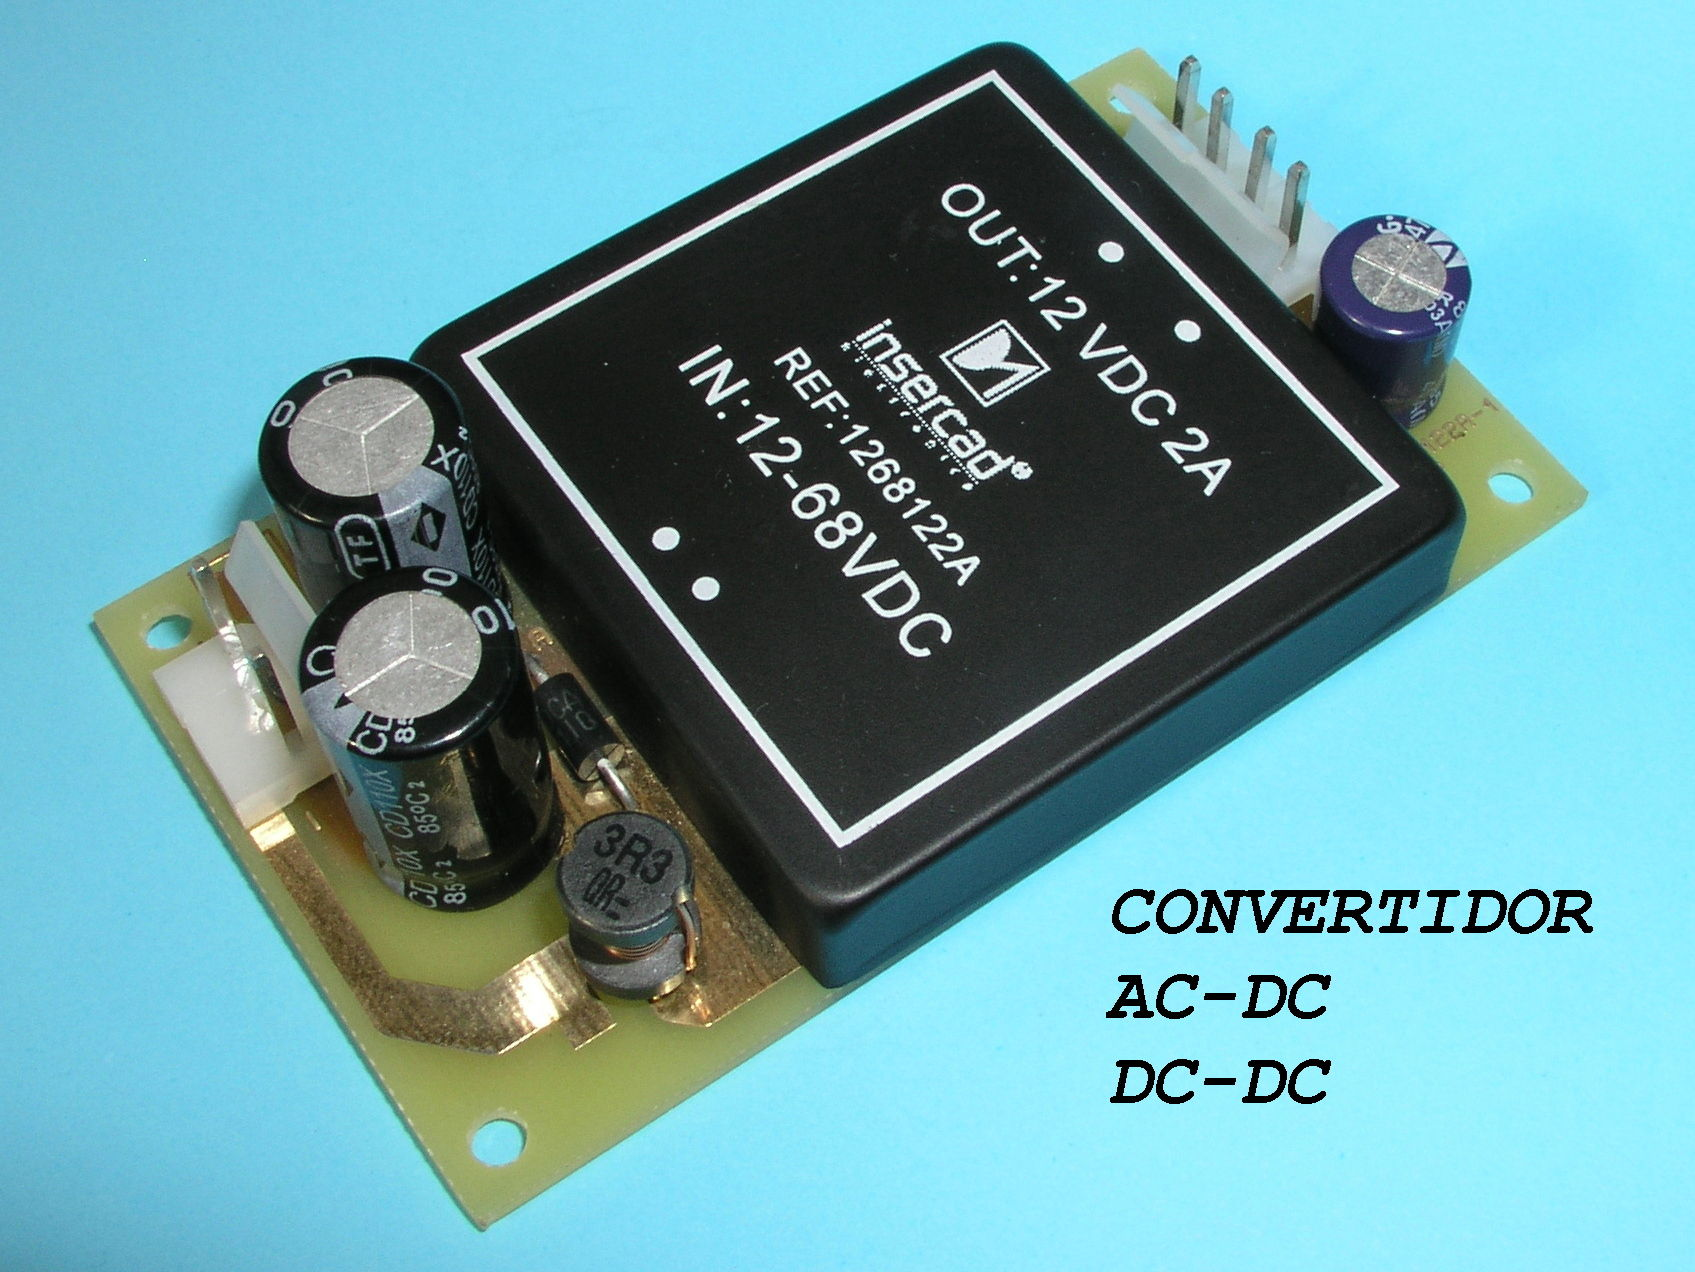 Convertidor DC/DC IN:12-68VDC OUT: 12VDC 2A